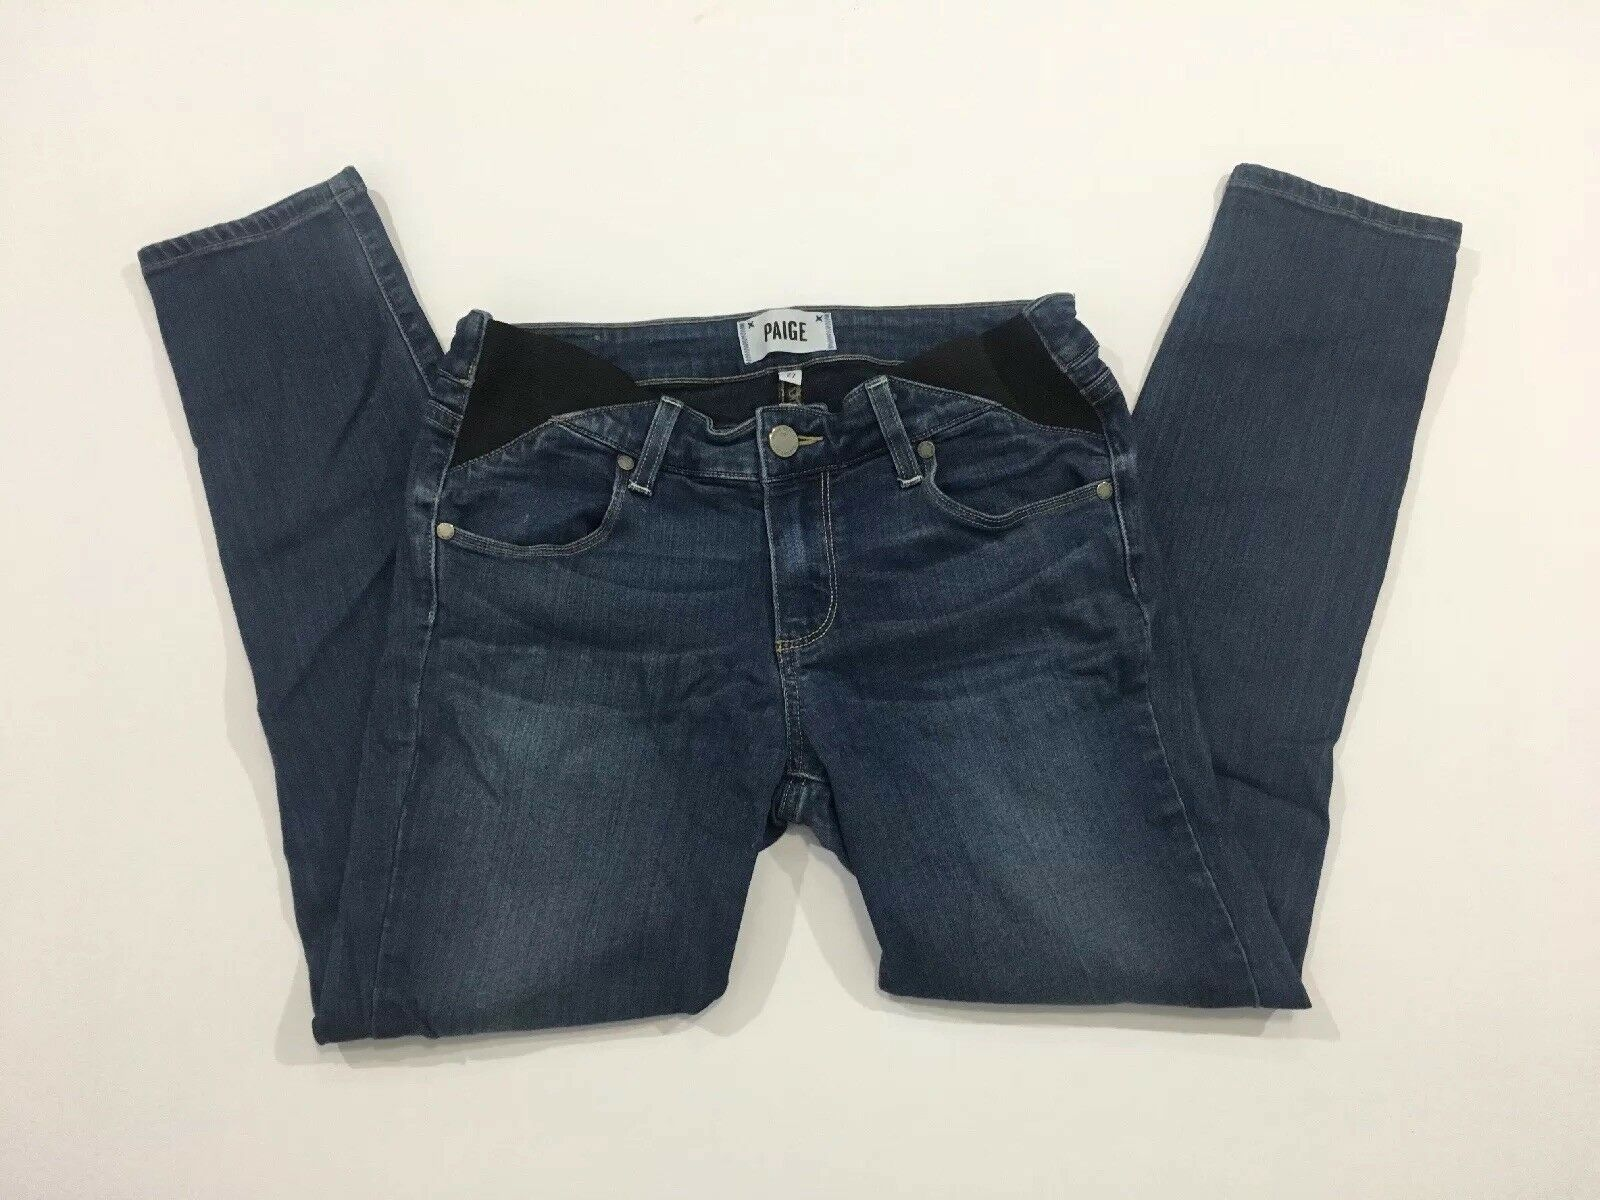 Women's PAIGE Jeans Size 27 Verdugo Crop Made in USA